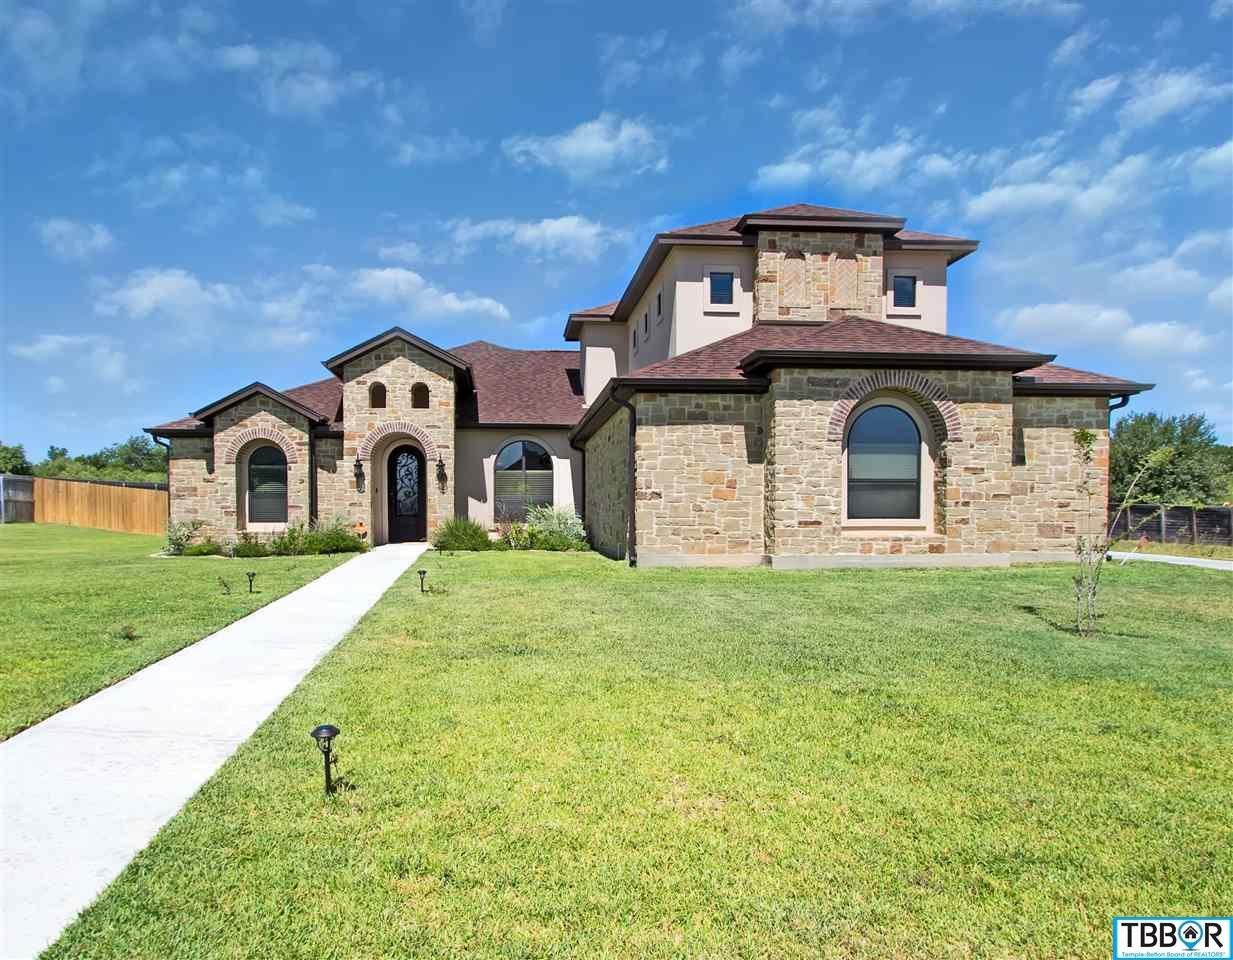 3206 Hester Way, Salado TX 76571 - Photo 1